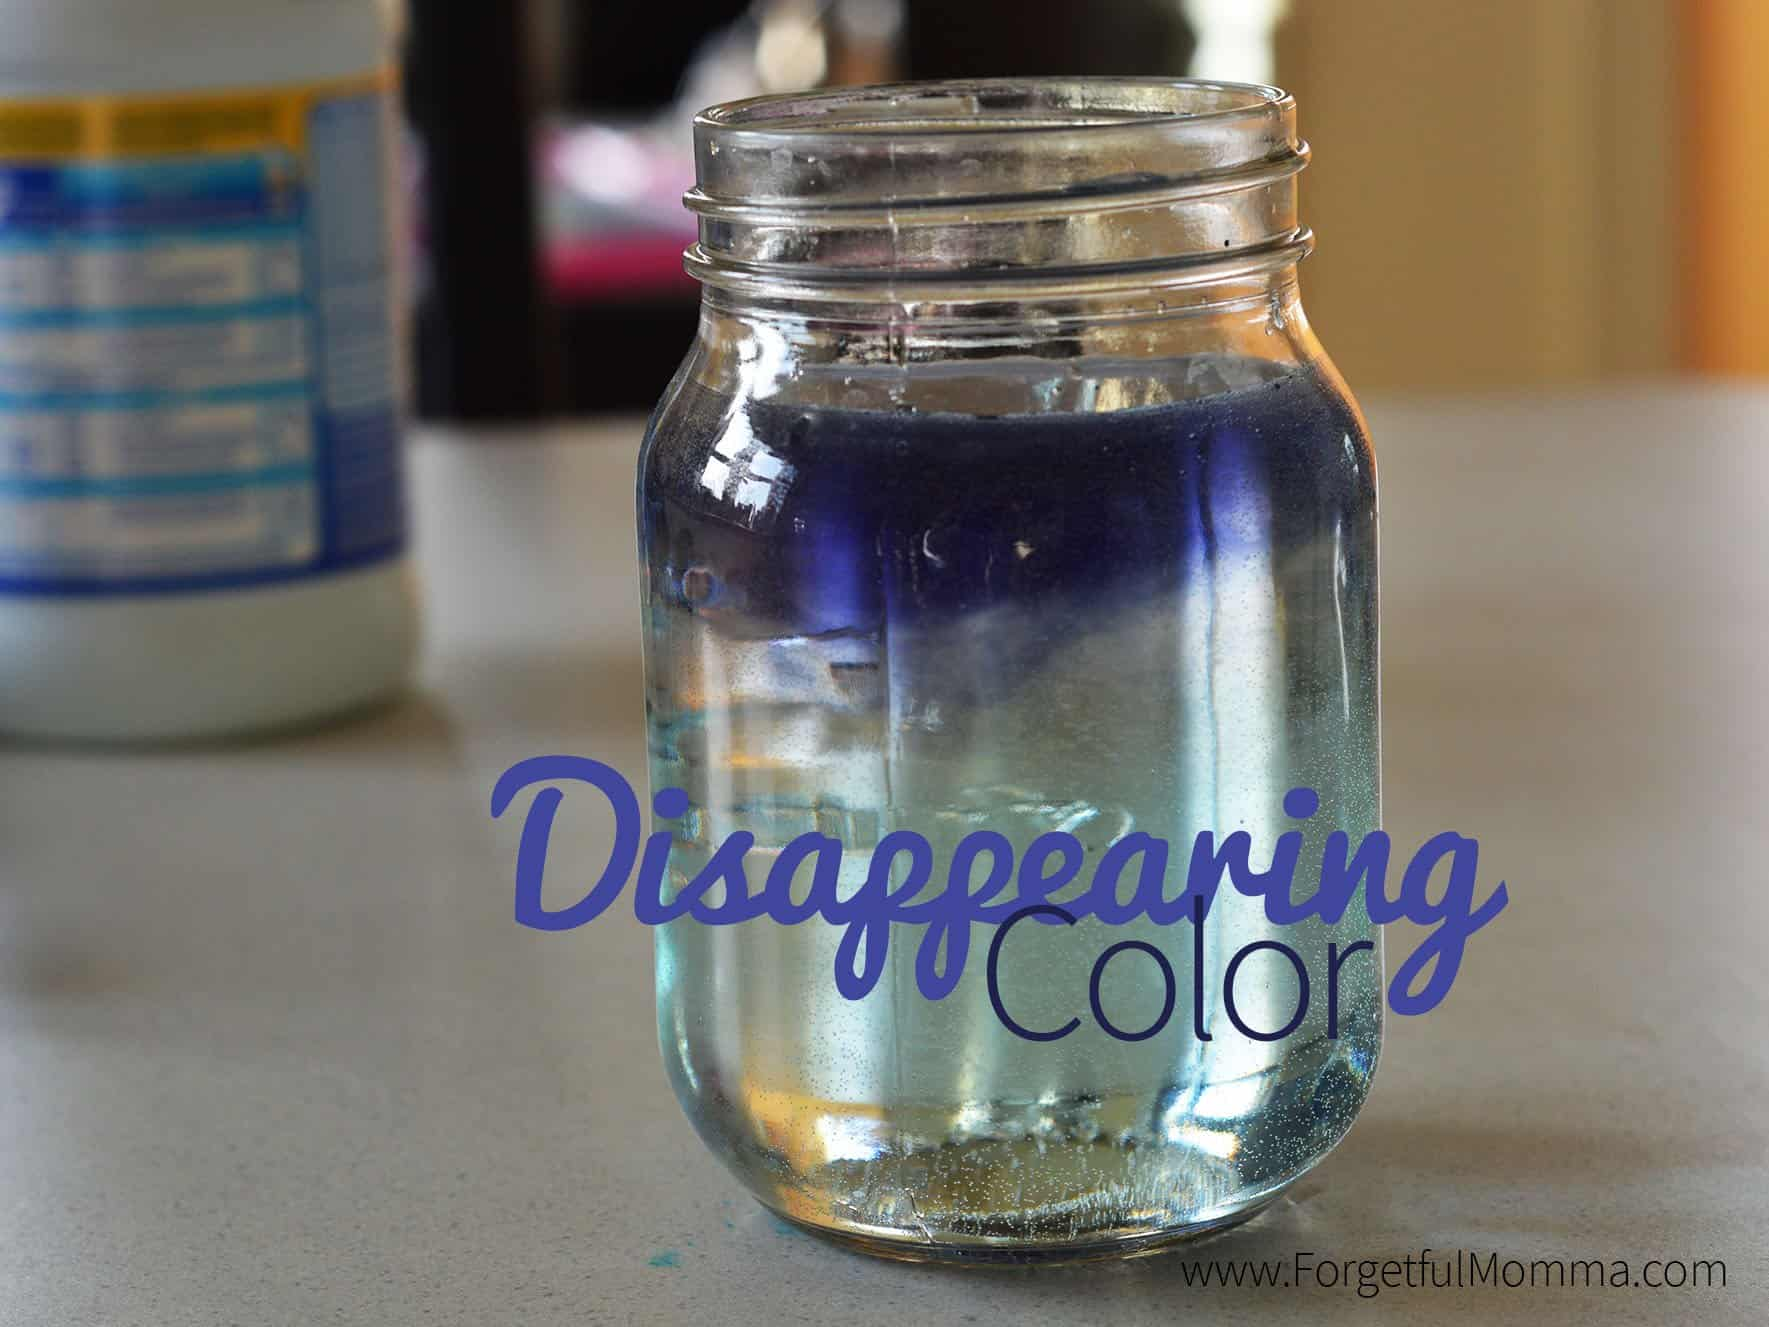 Disappearing Color Science Experiment